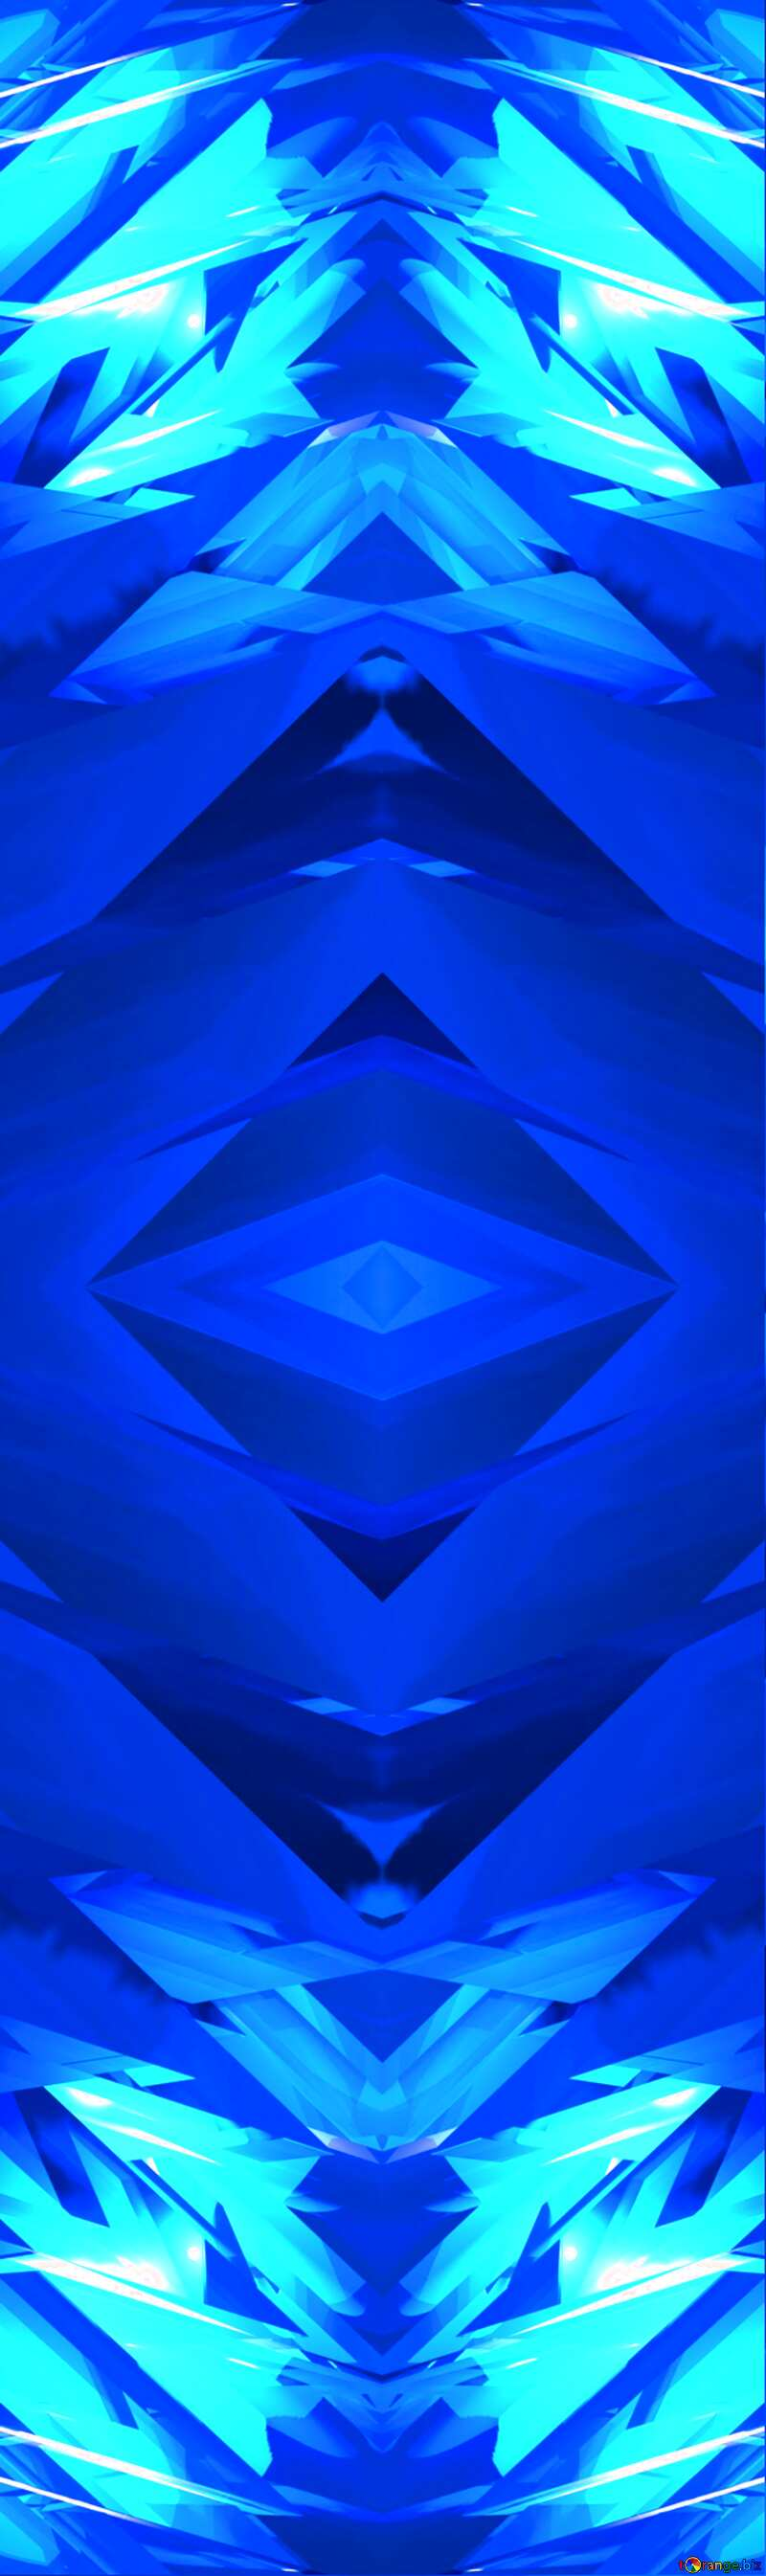 Abstract Computer Blue pattern №51524